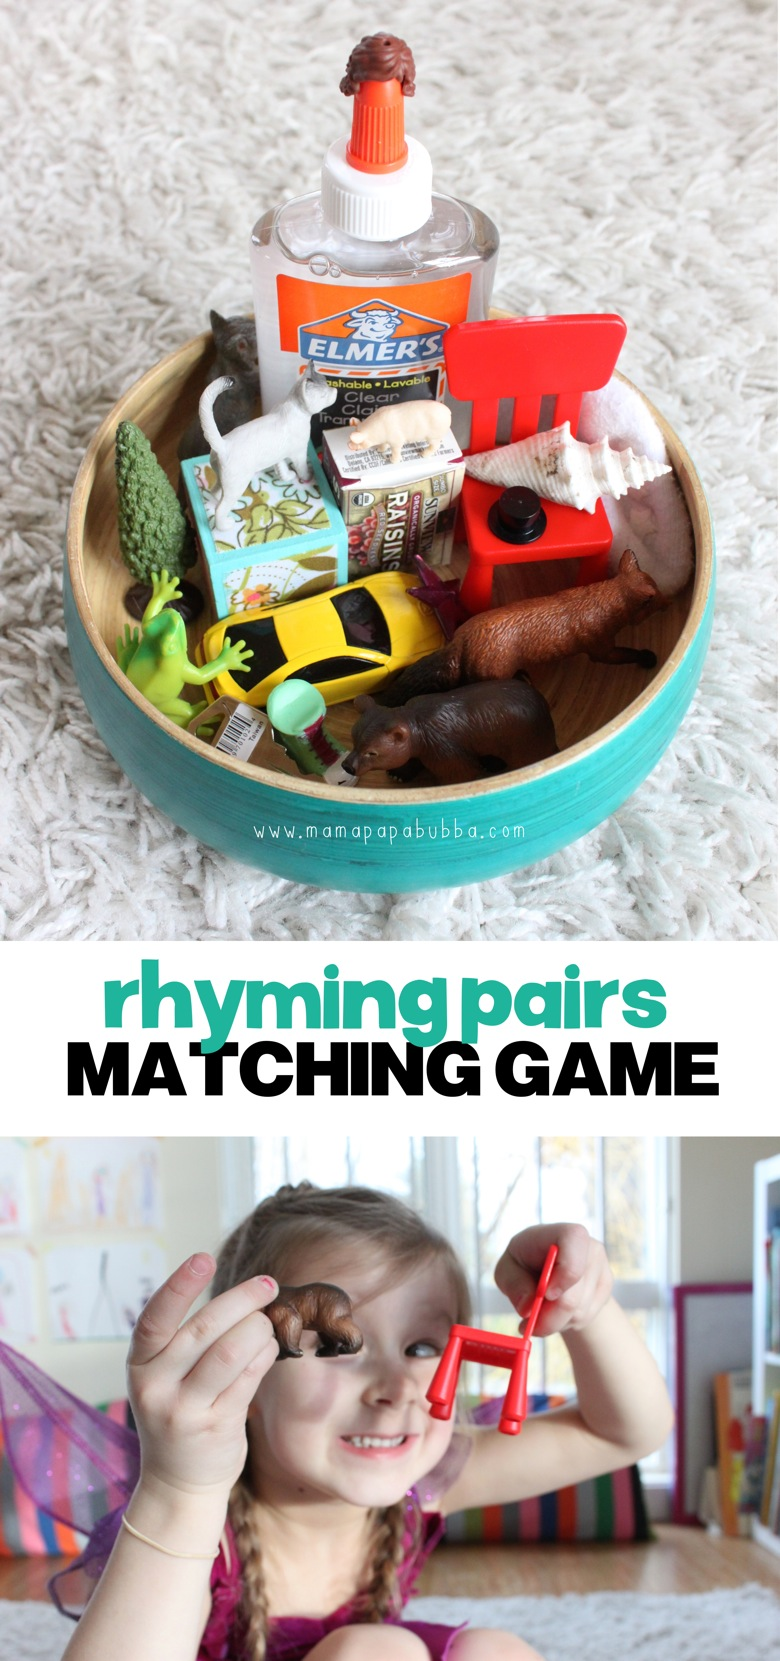 Rhyming Pairs Matching Game | Mama Papa Bubba